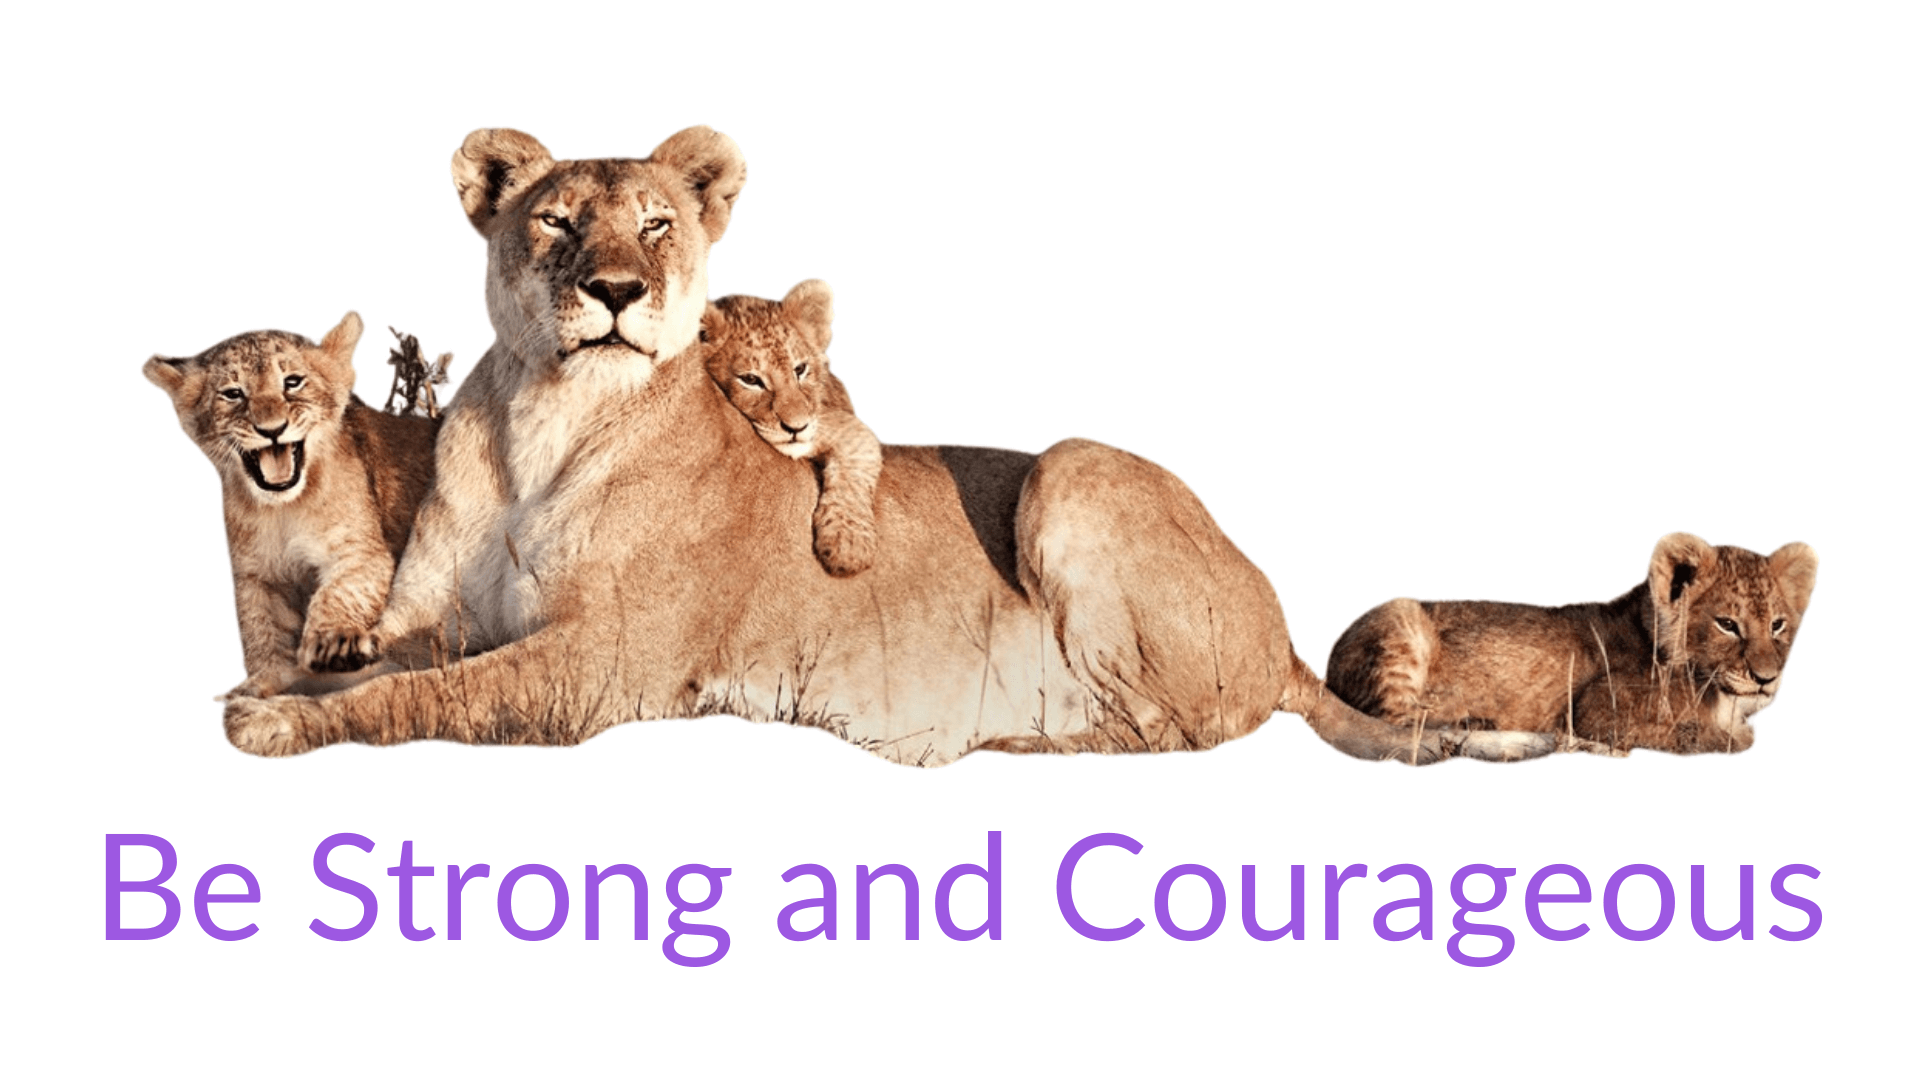 Be Strong and Courageous Year 5 or 6 online retreat for christian and catholic primary school retreats by Donna Power at Experience Wellbeing in Brisbane suitable for year 6 leadership retreat activities